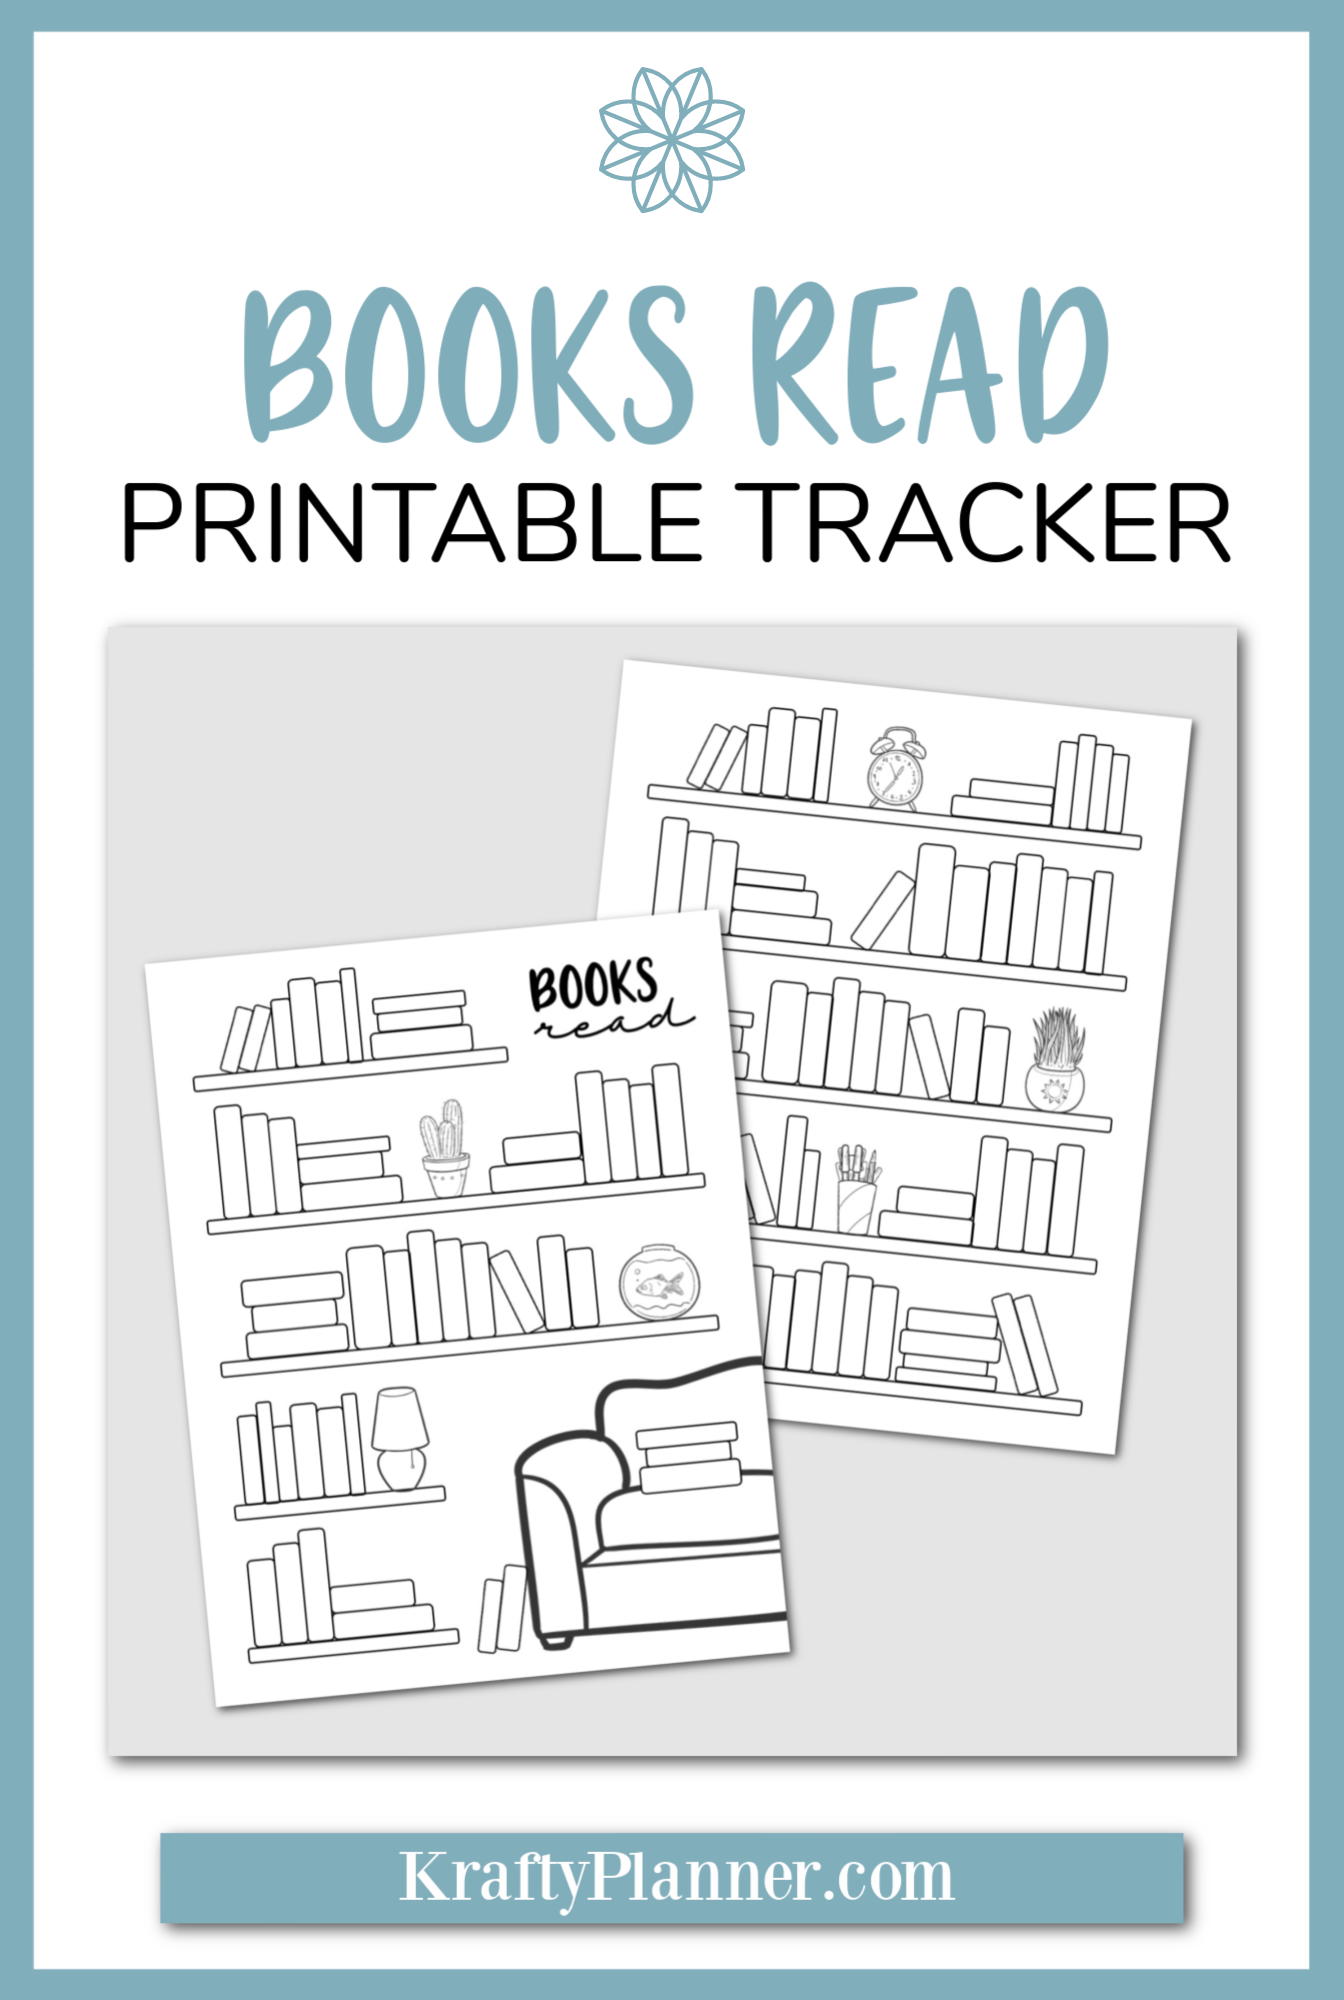 Books Read Printable Tracker PIN.png